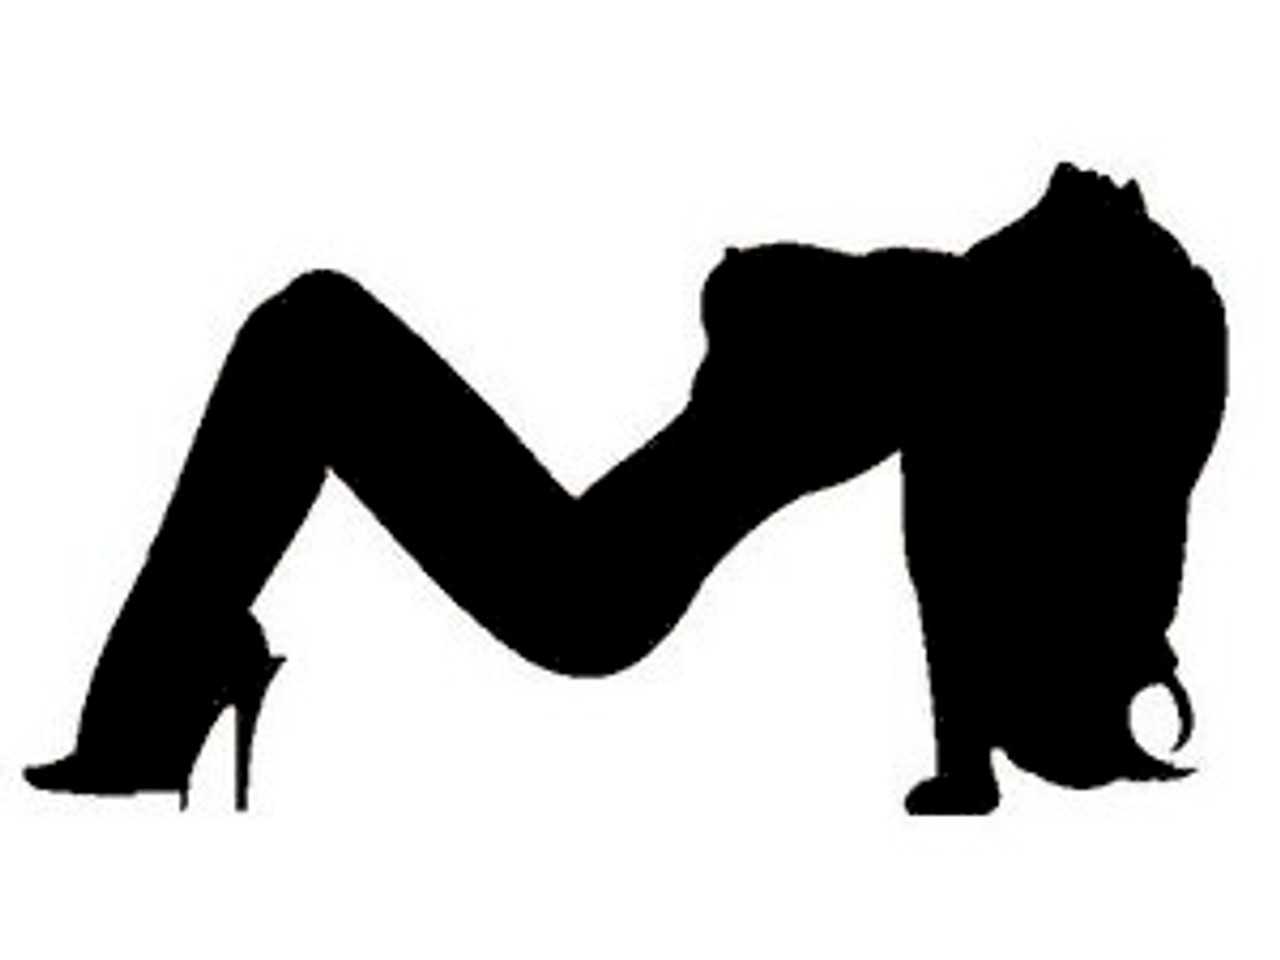 Sexy girl silhouette decal